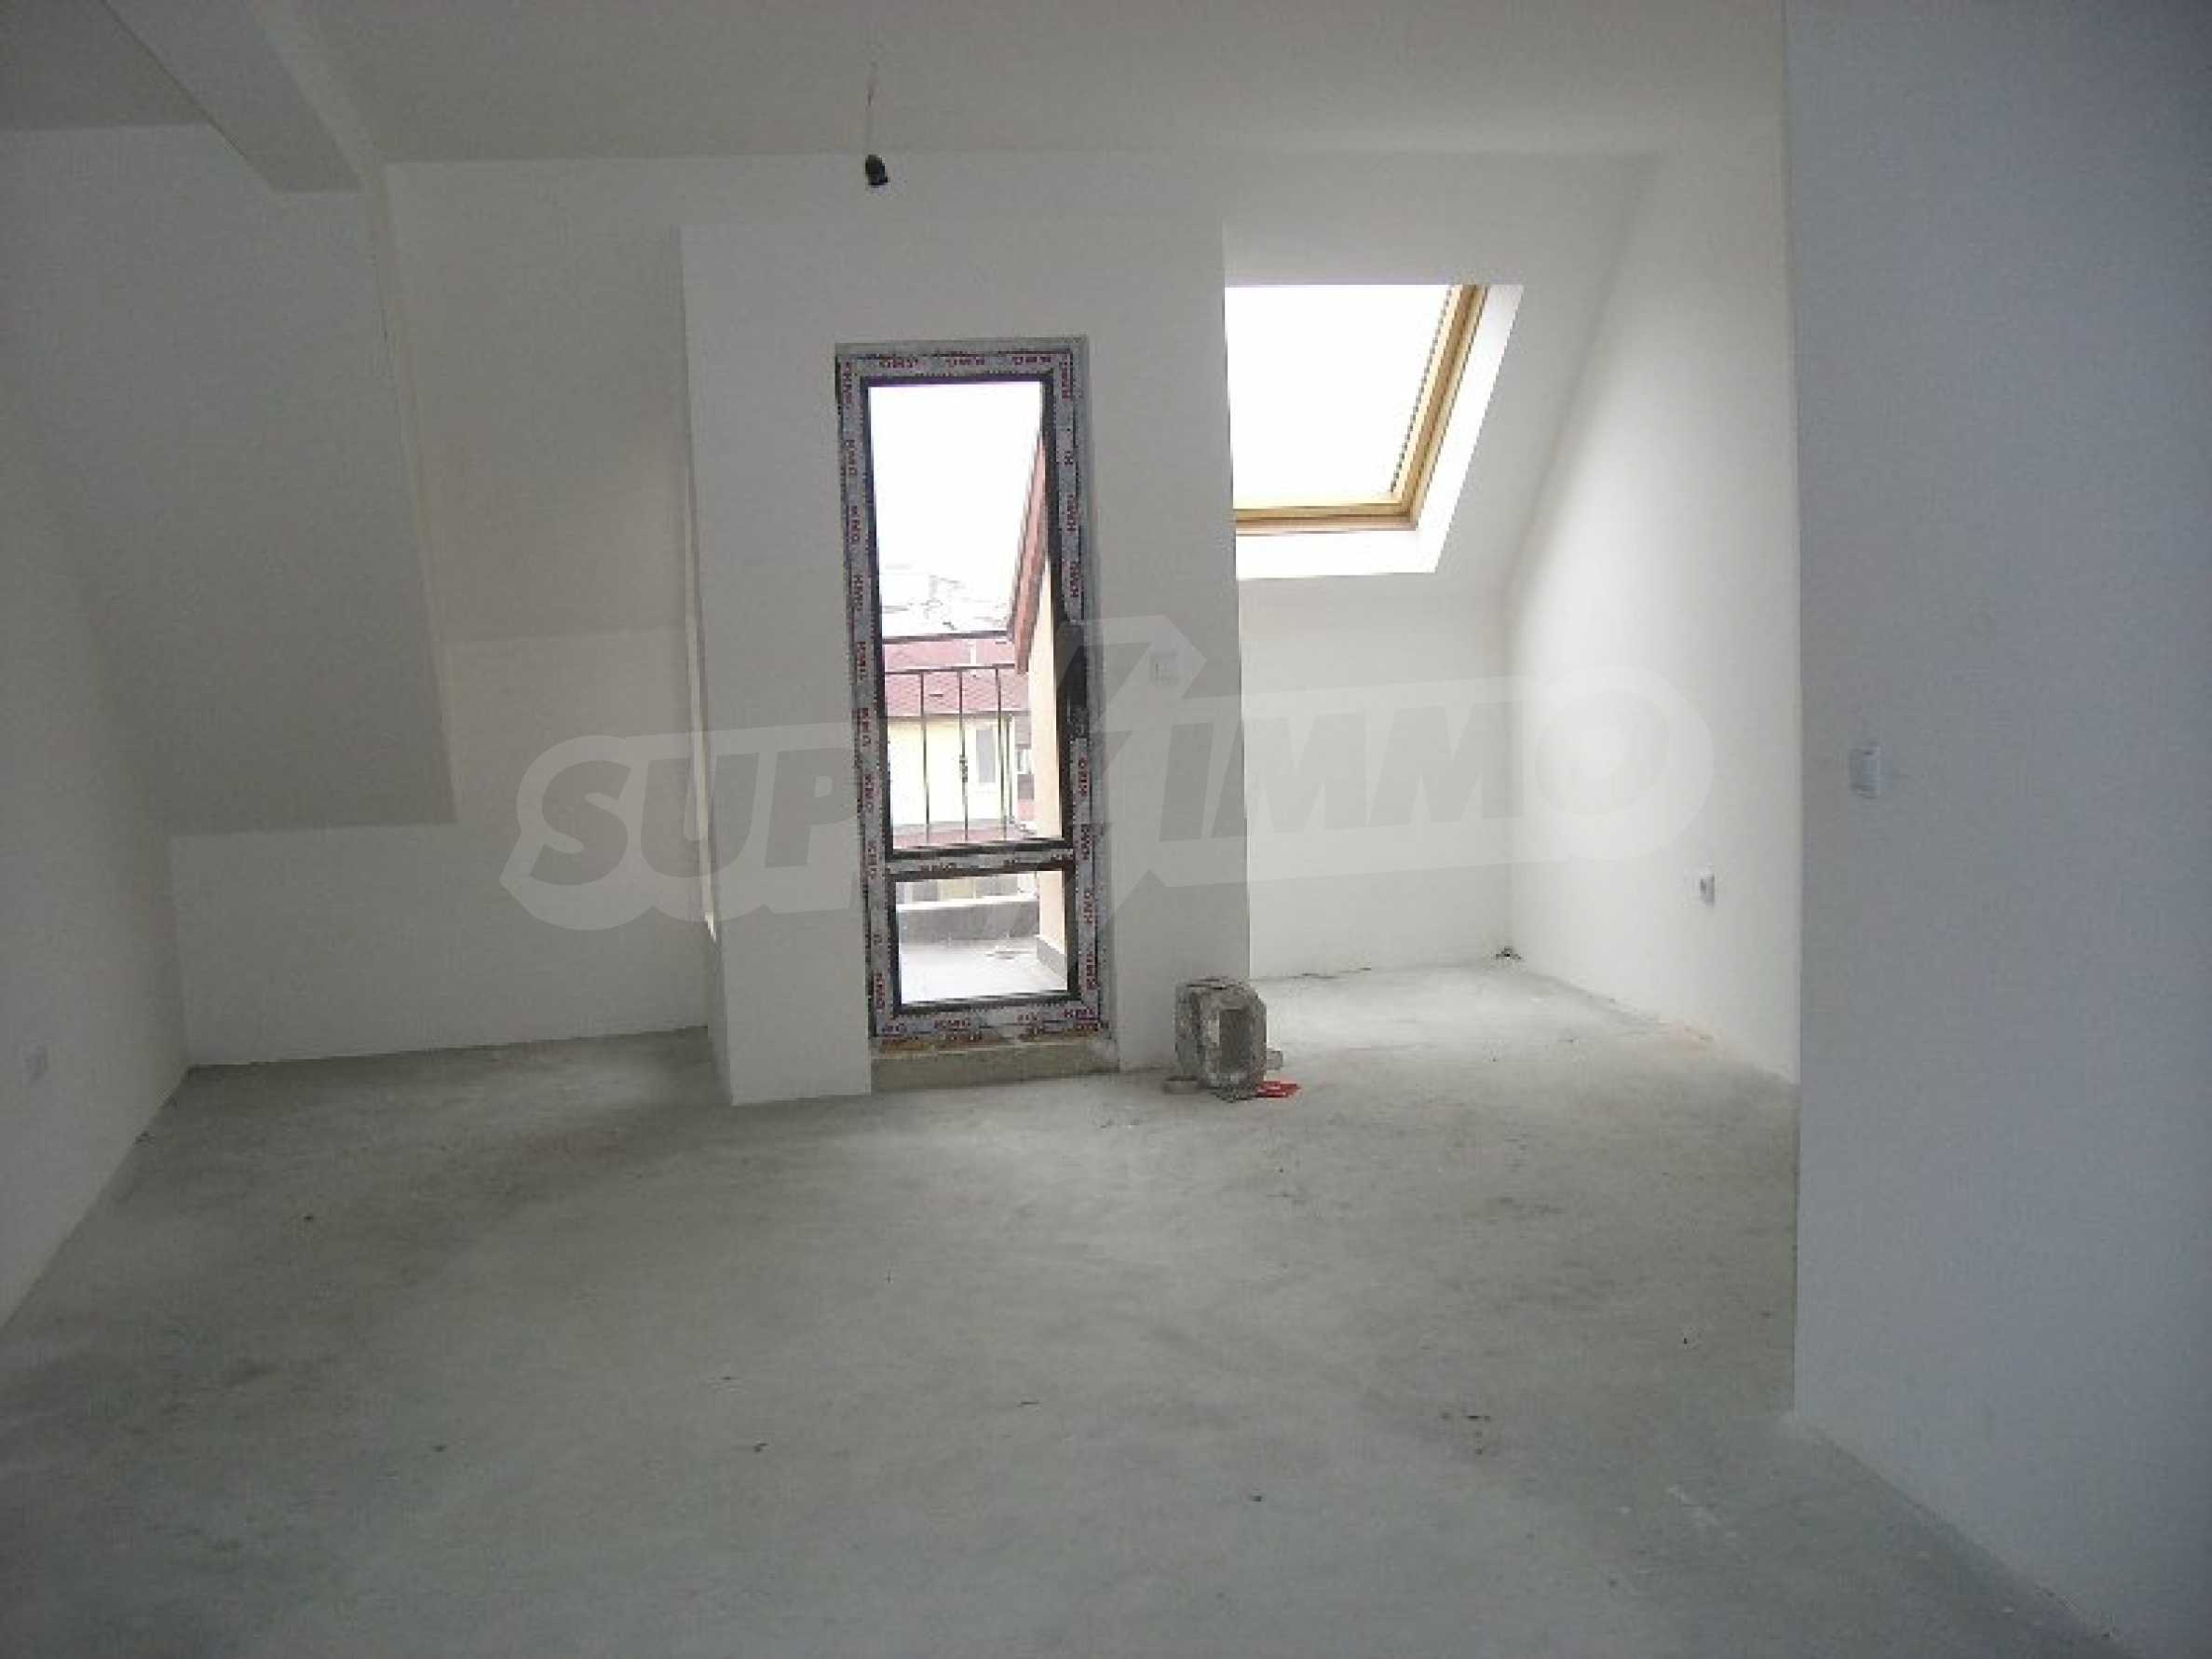 Penthouse in Varna for sale